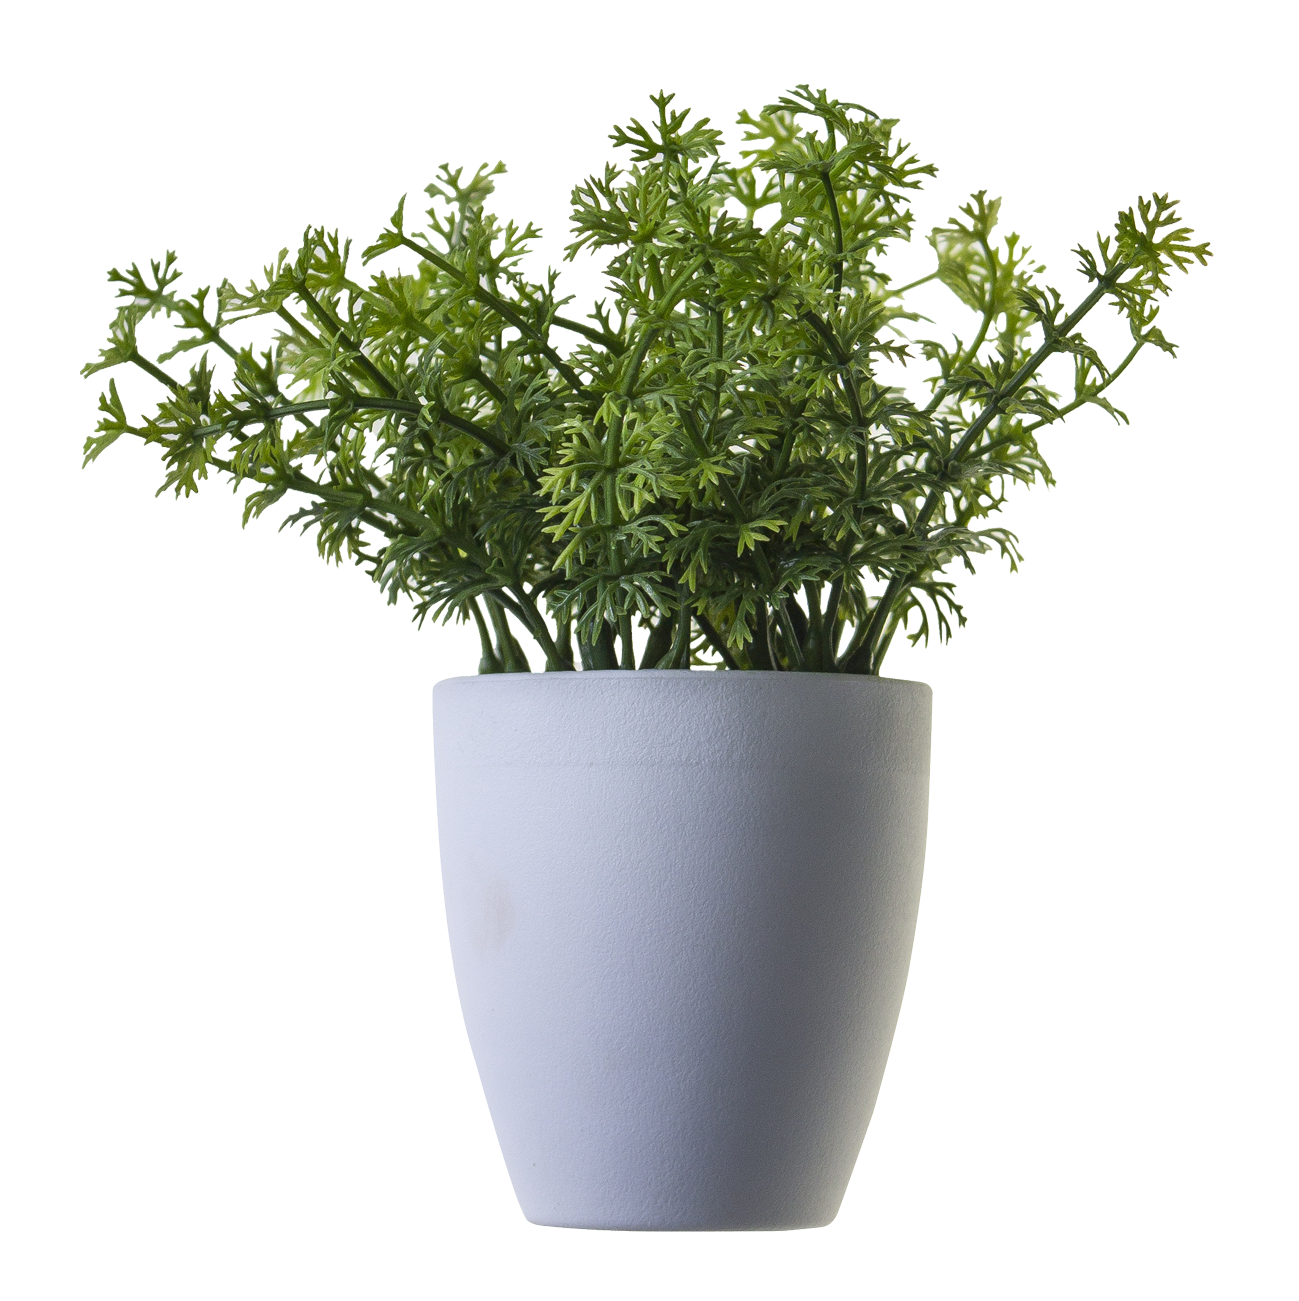 Plant Png Image Potted Flower 44904 Free Icons And Png